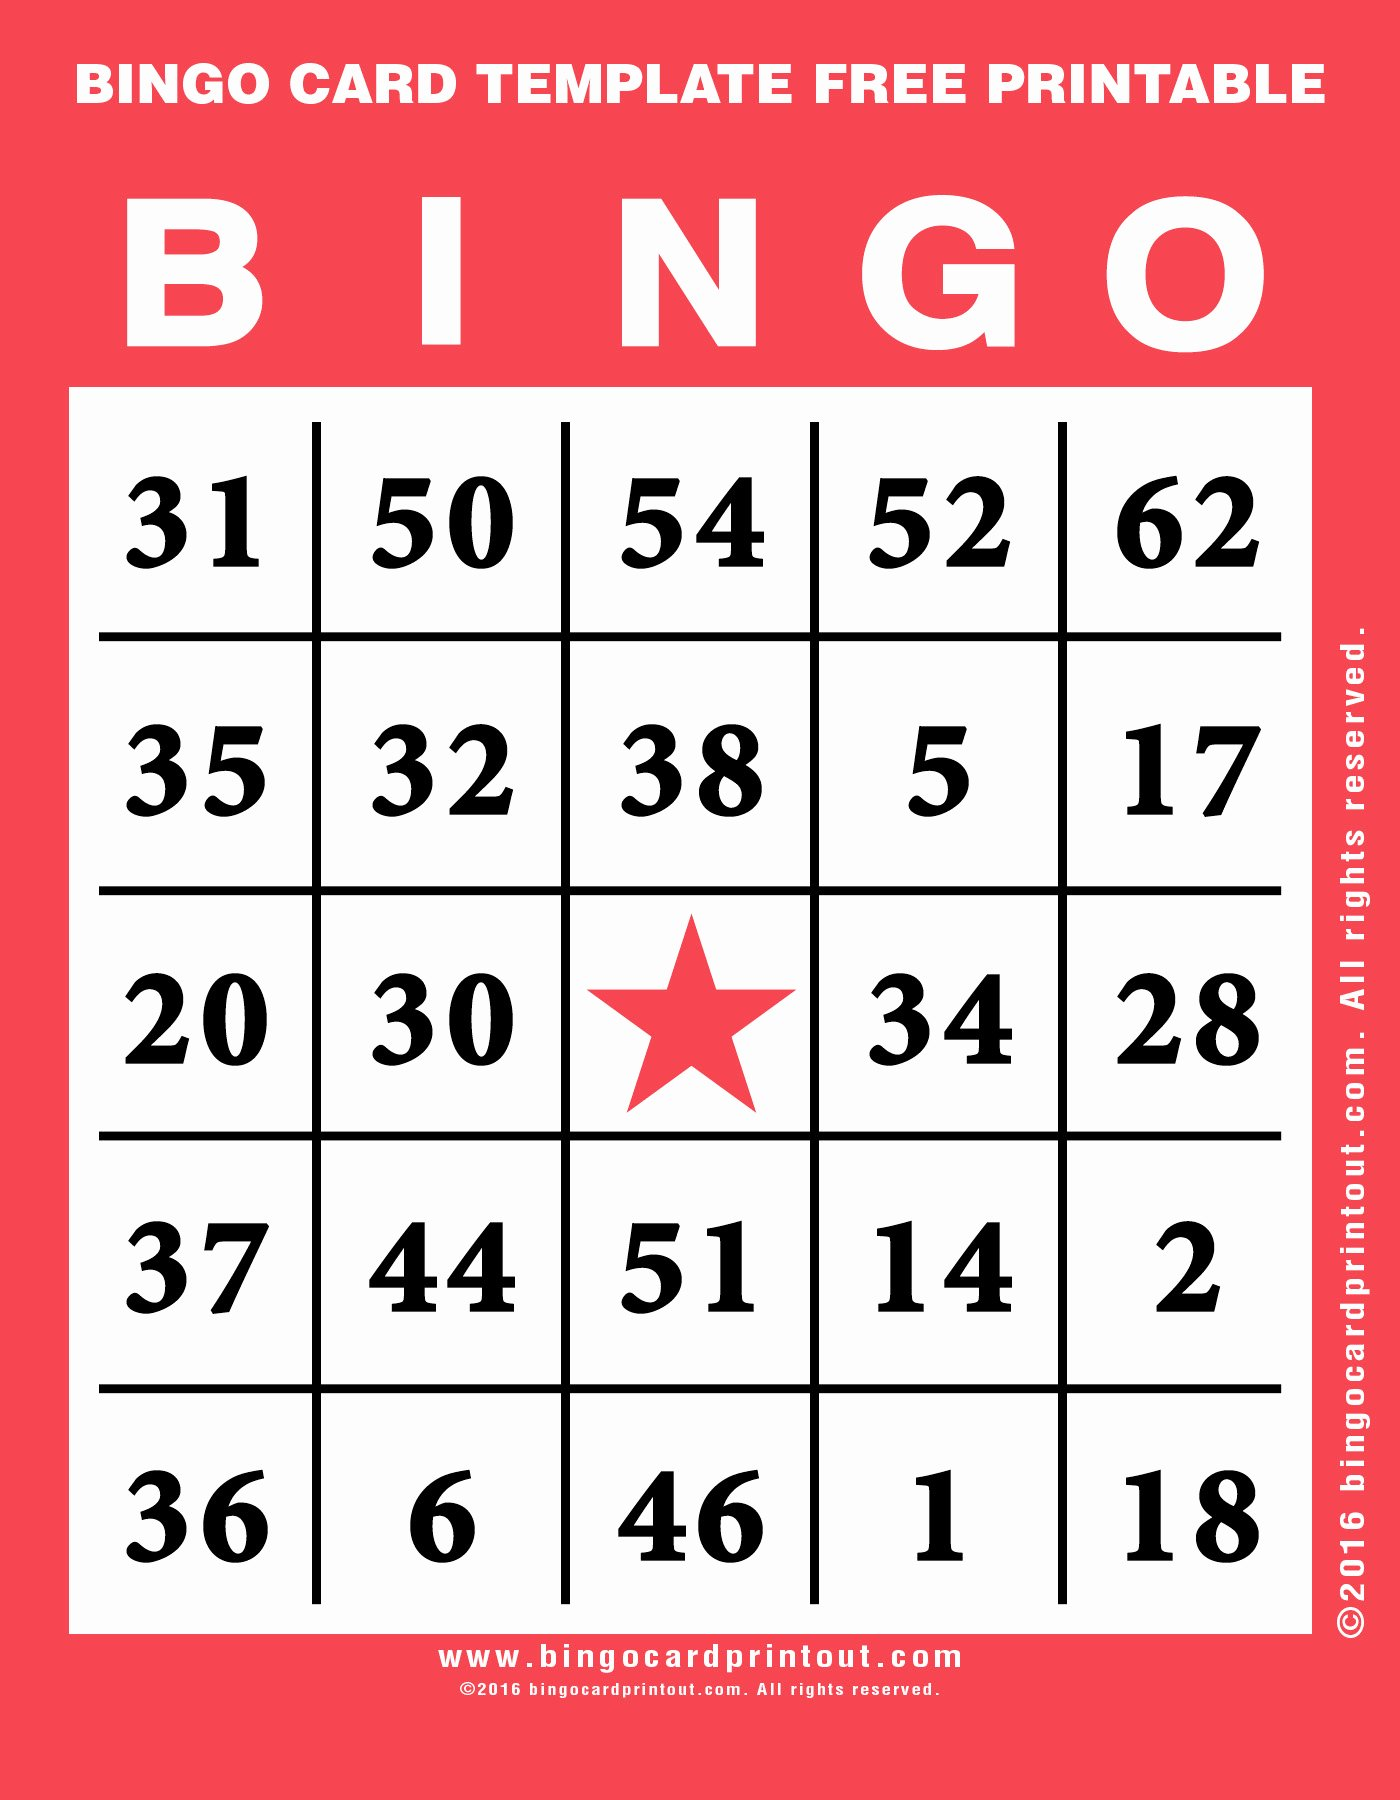 Free Bingo Card Templates Printable Best Of Bingo Card Template Free Printable Bingocardprintout